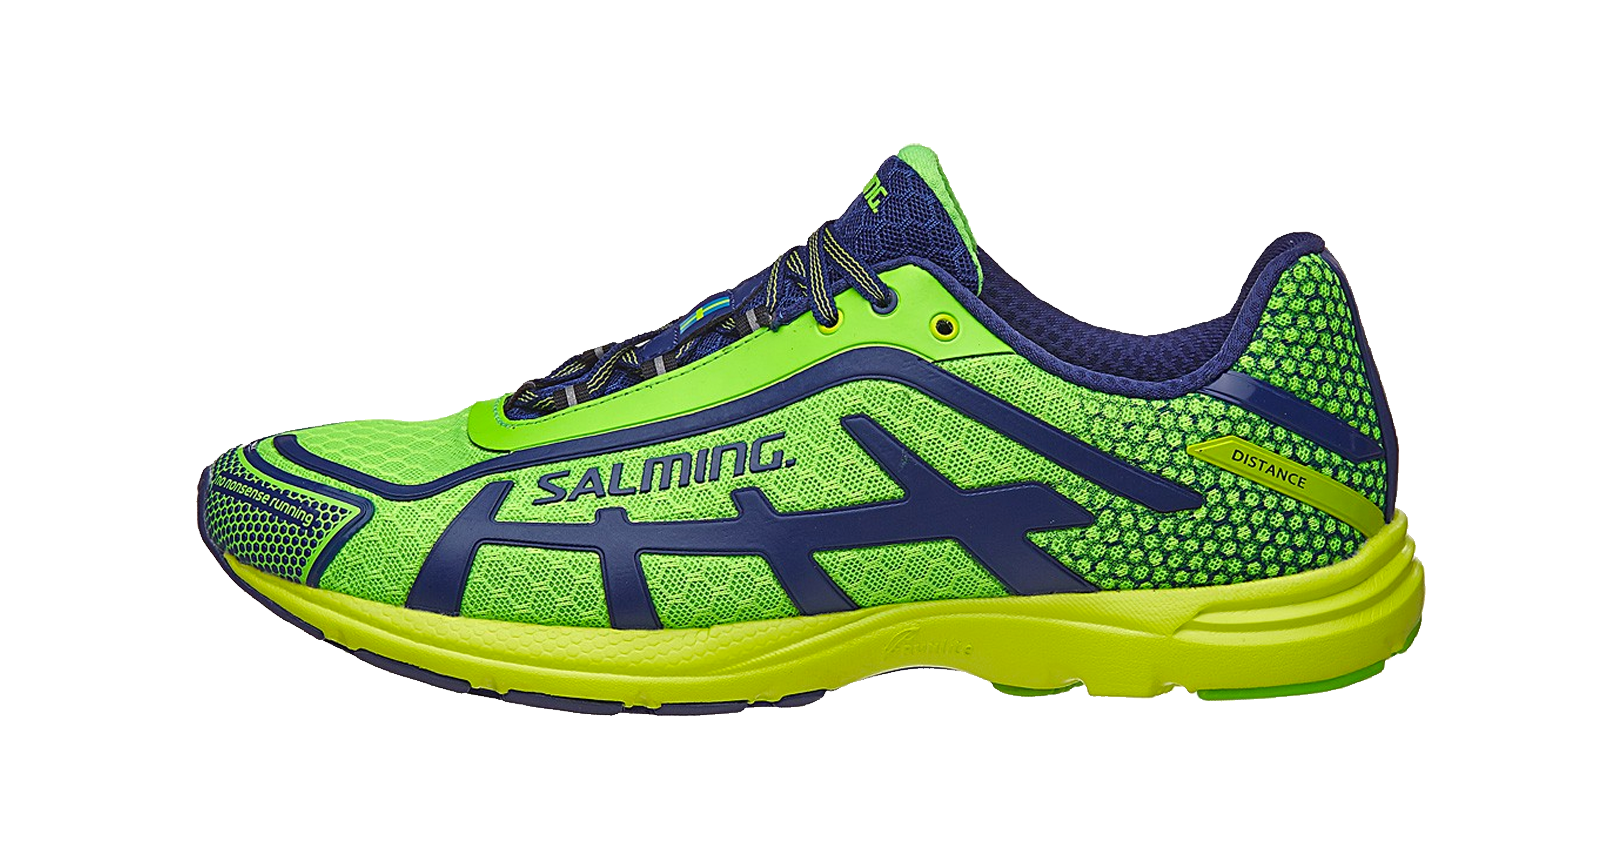 Running Shoes Reviews Consumer Reports